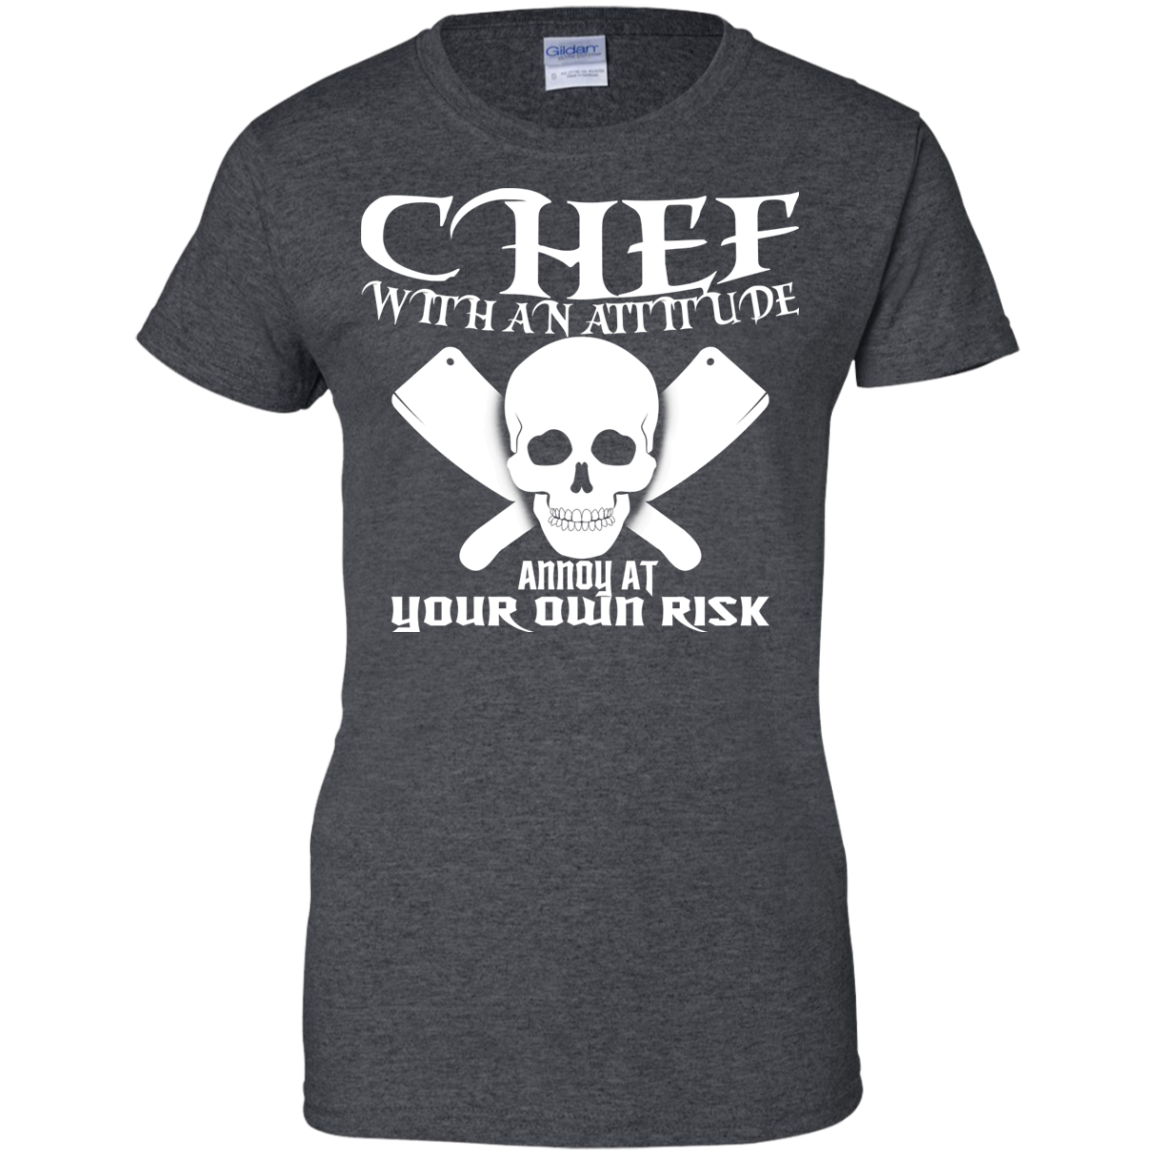 Chef With An Attitude Annoy At Your Own Risk Ladies Tees